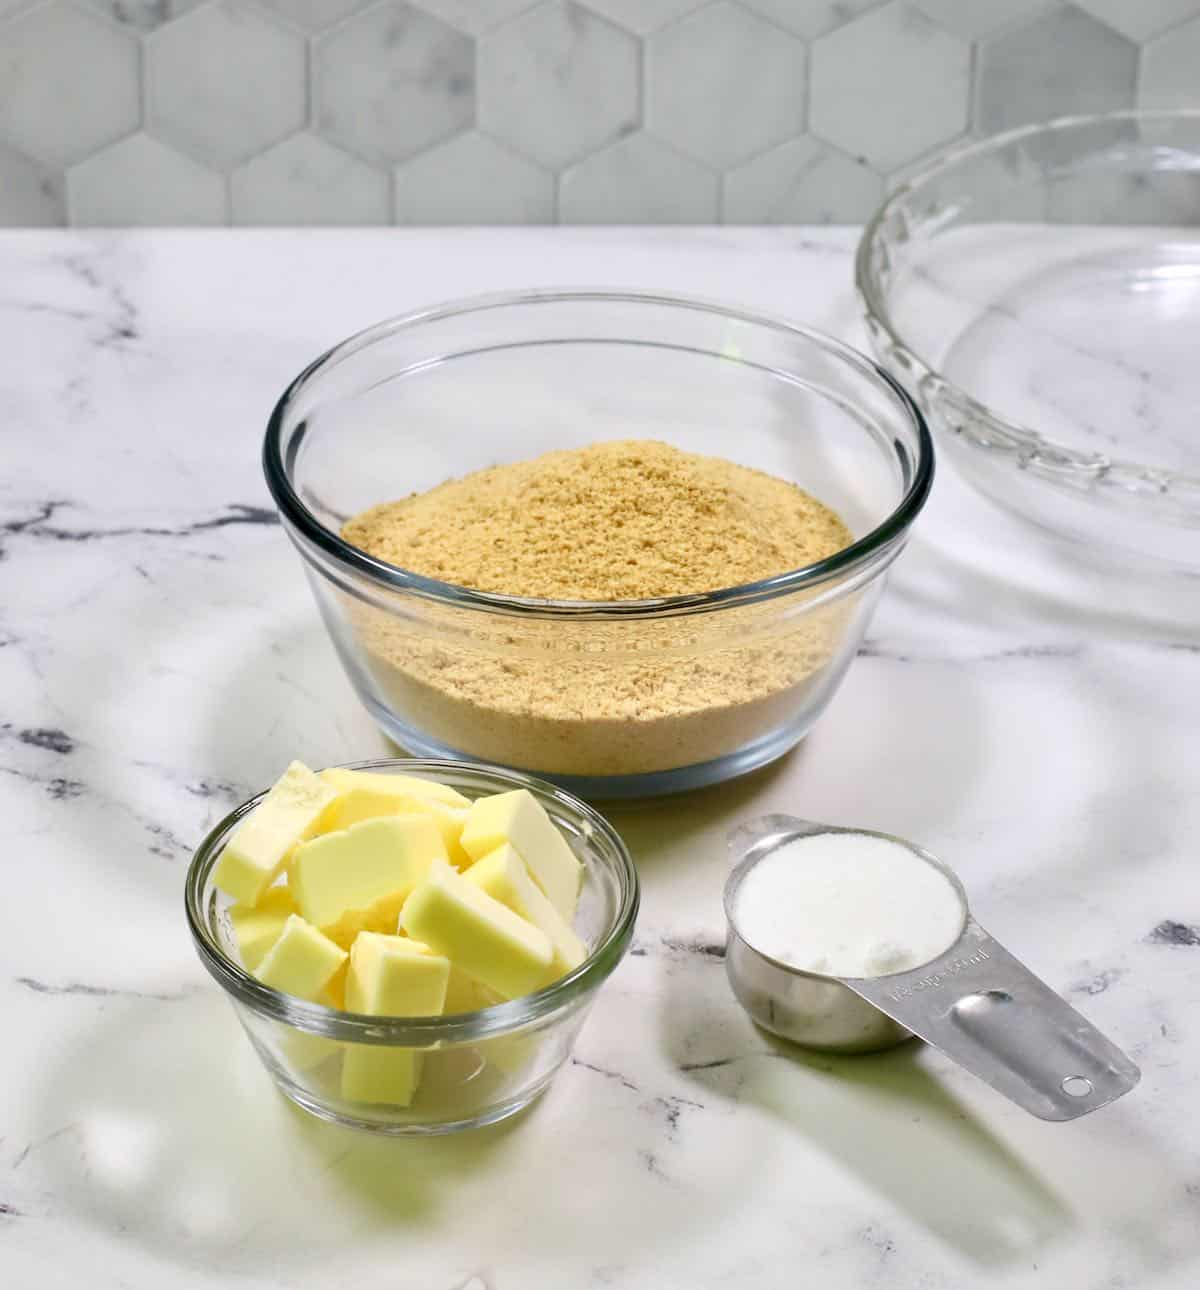 A bowl of graham cracker crumbs, butter, and sugar on a countertop.